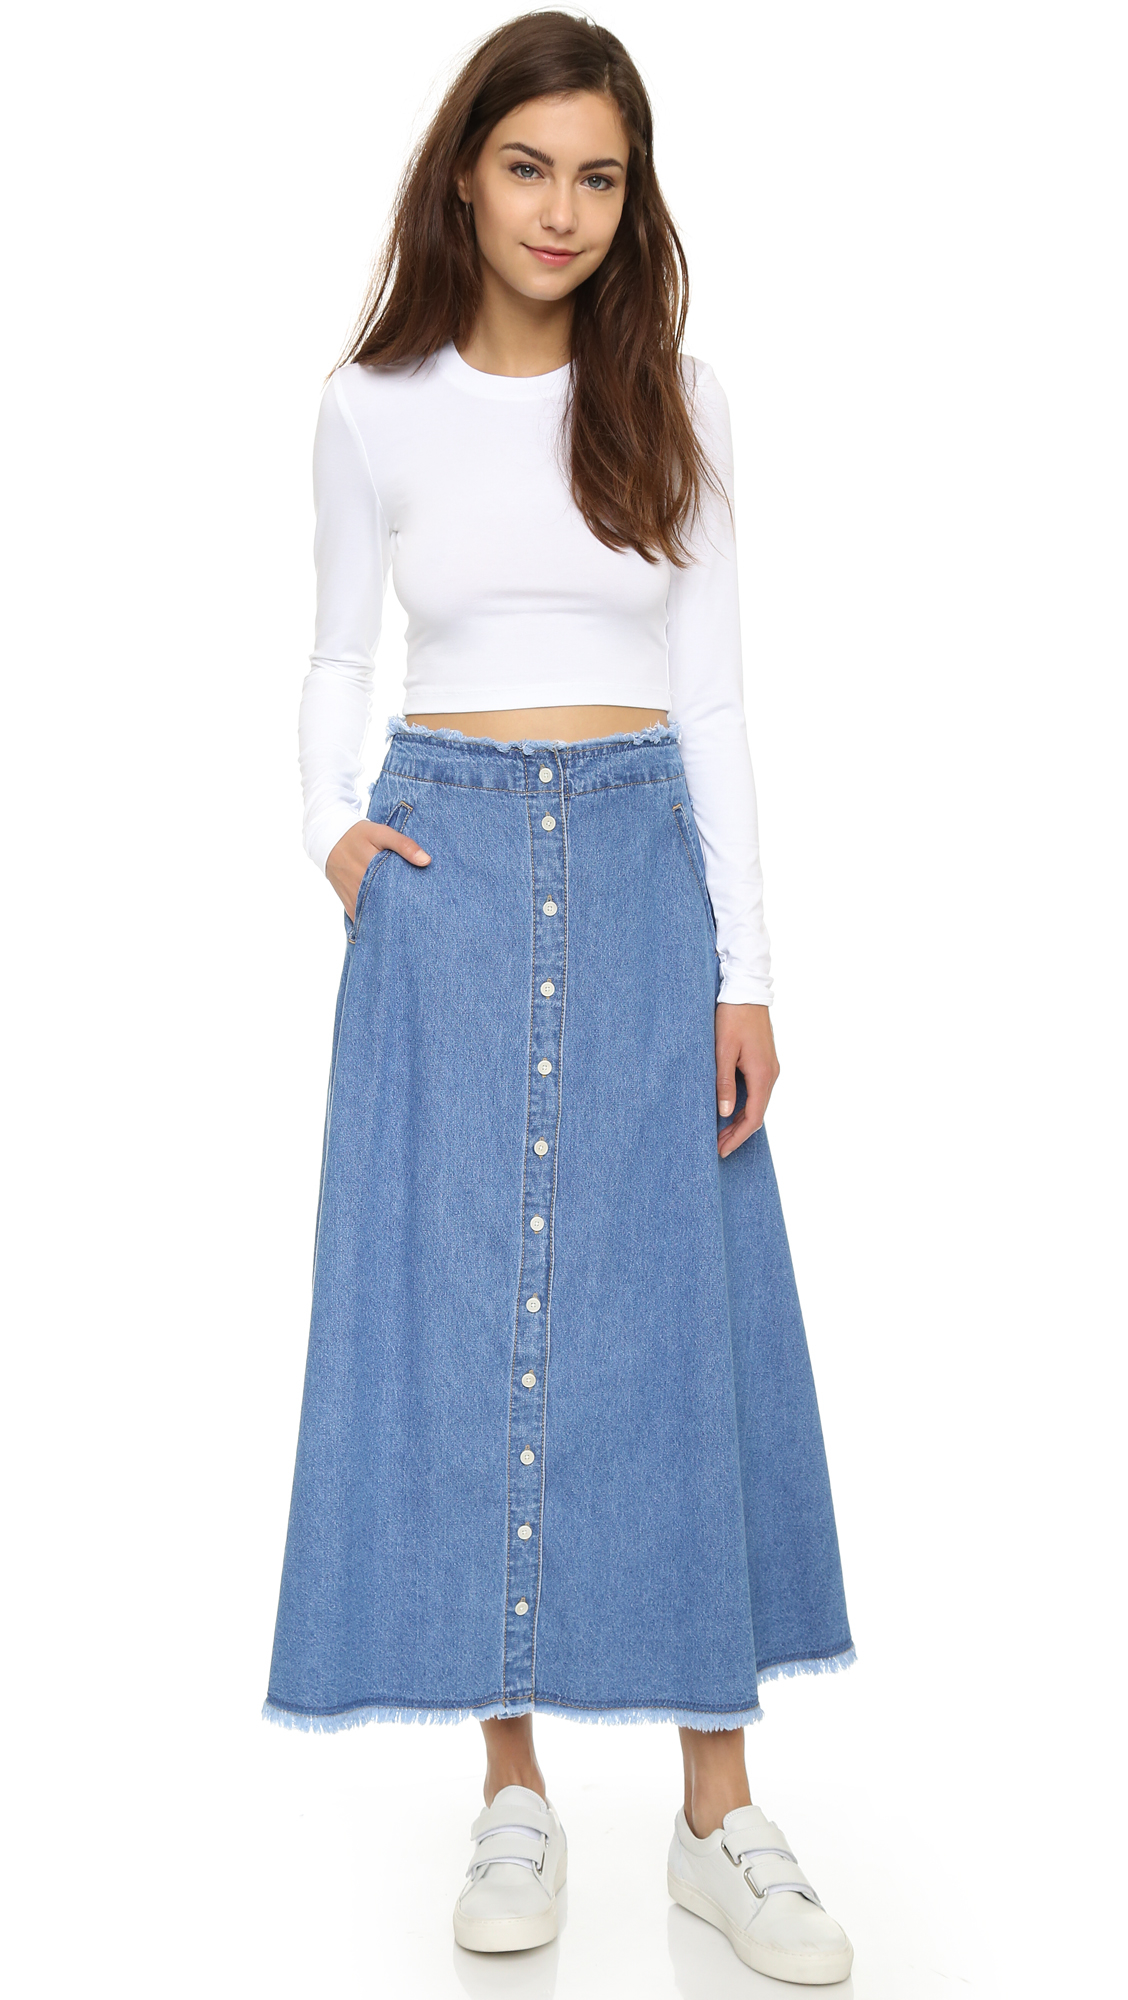 The denim skirt was introduced in the s as a way to recycle denim jeans. Here, two women modeled front-snap, patchwork midi skirts made from scraps of old pairs.